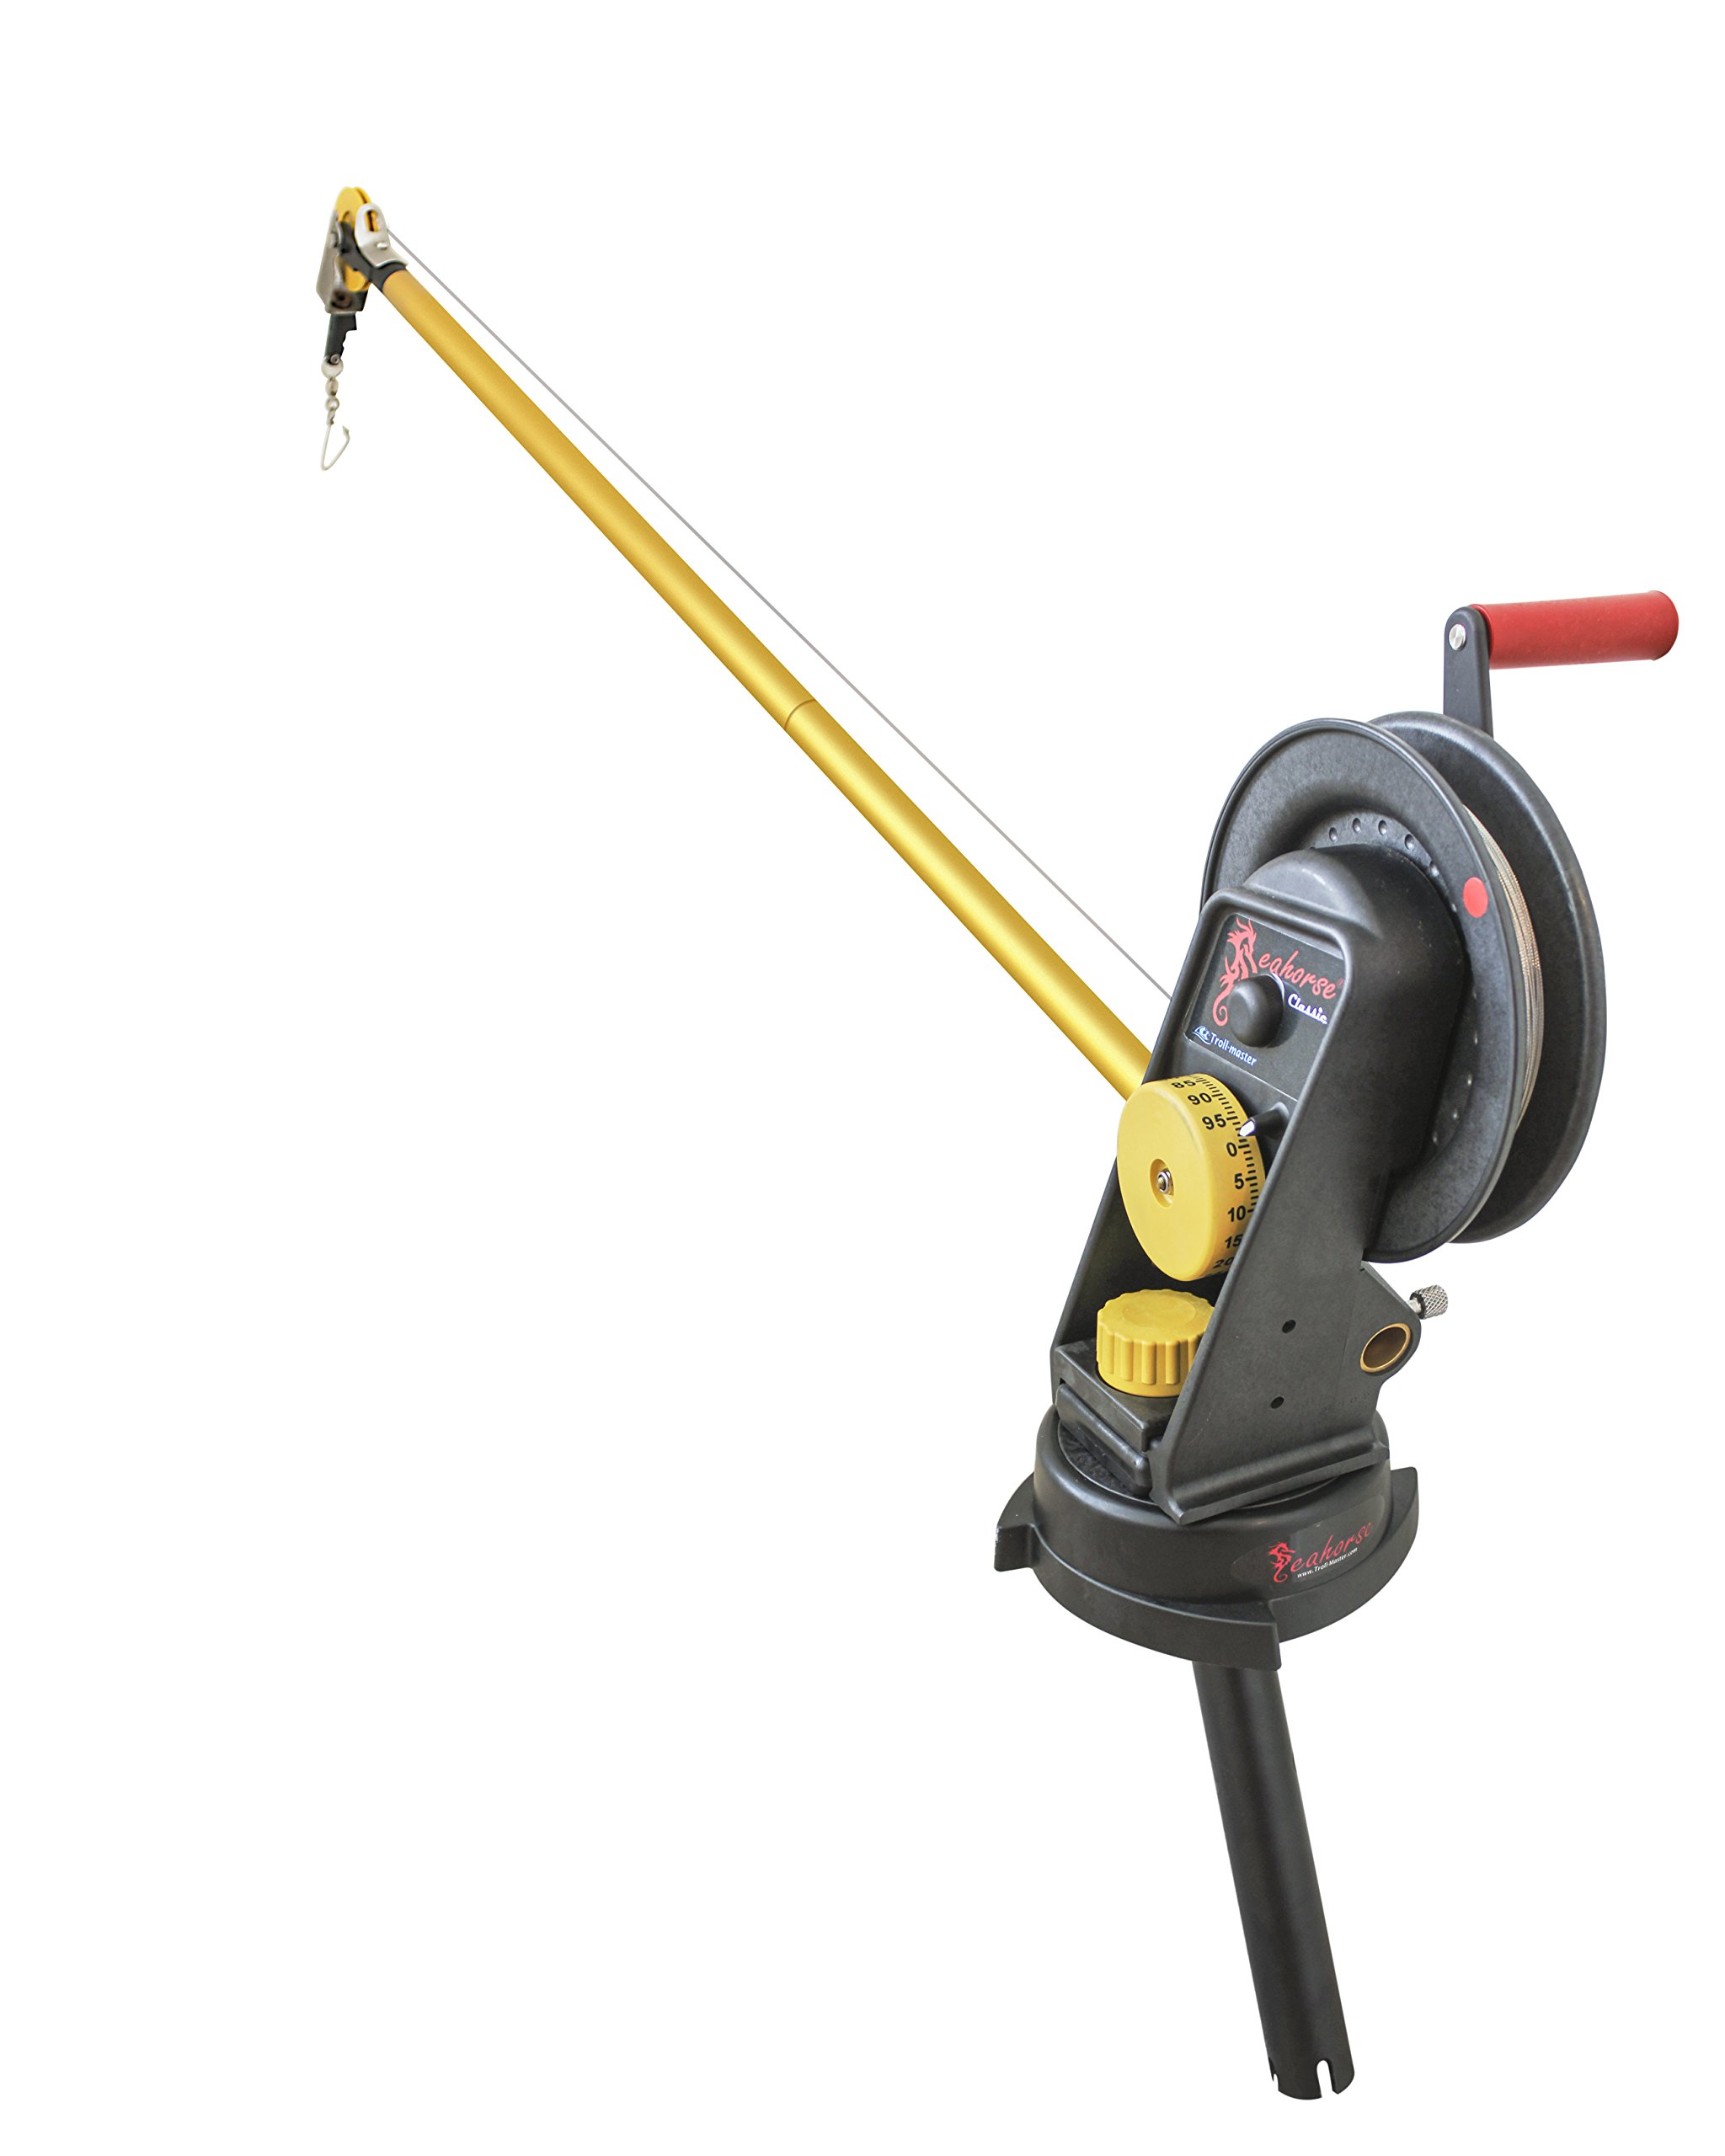 Seahorse Downrigger with Extended Boom, Swivel Base and Gimbal By Troll-master by Seahorse